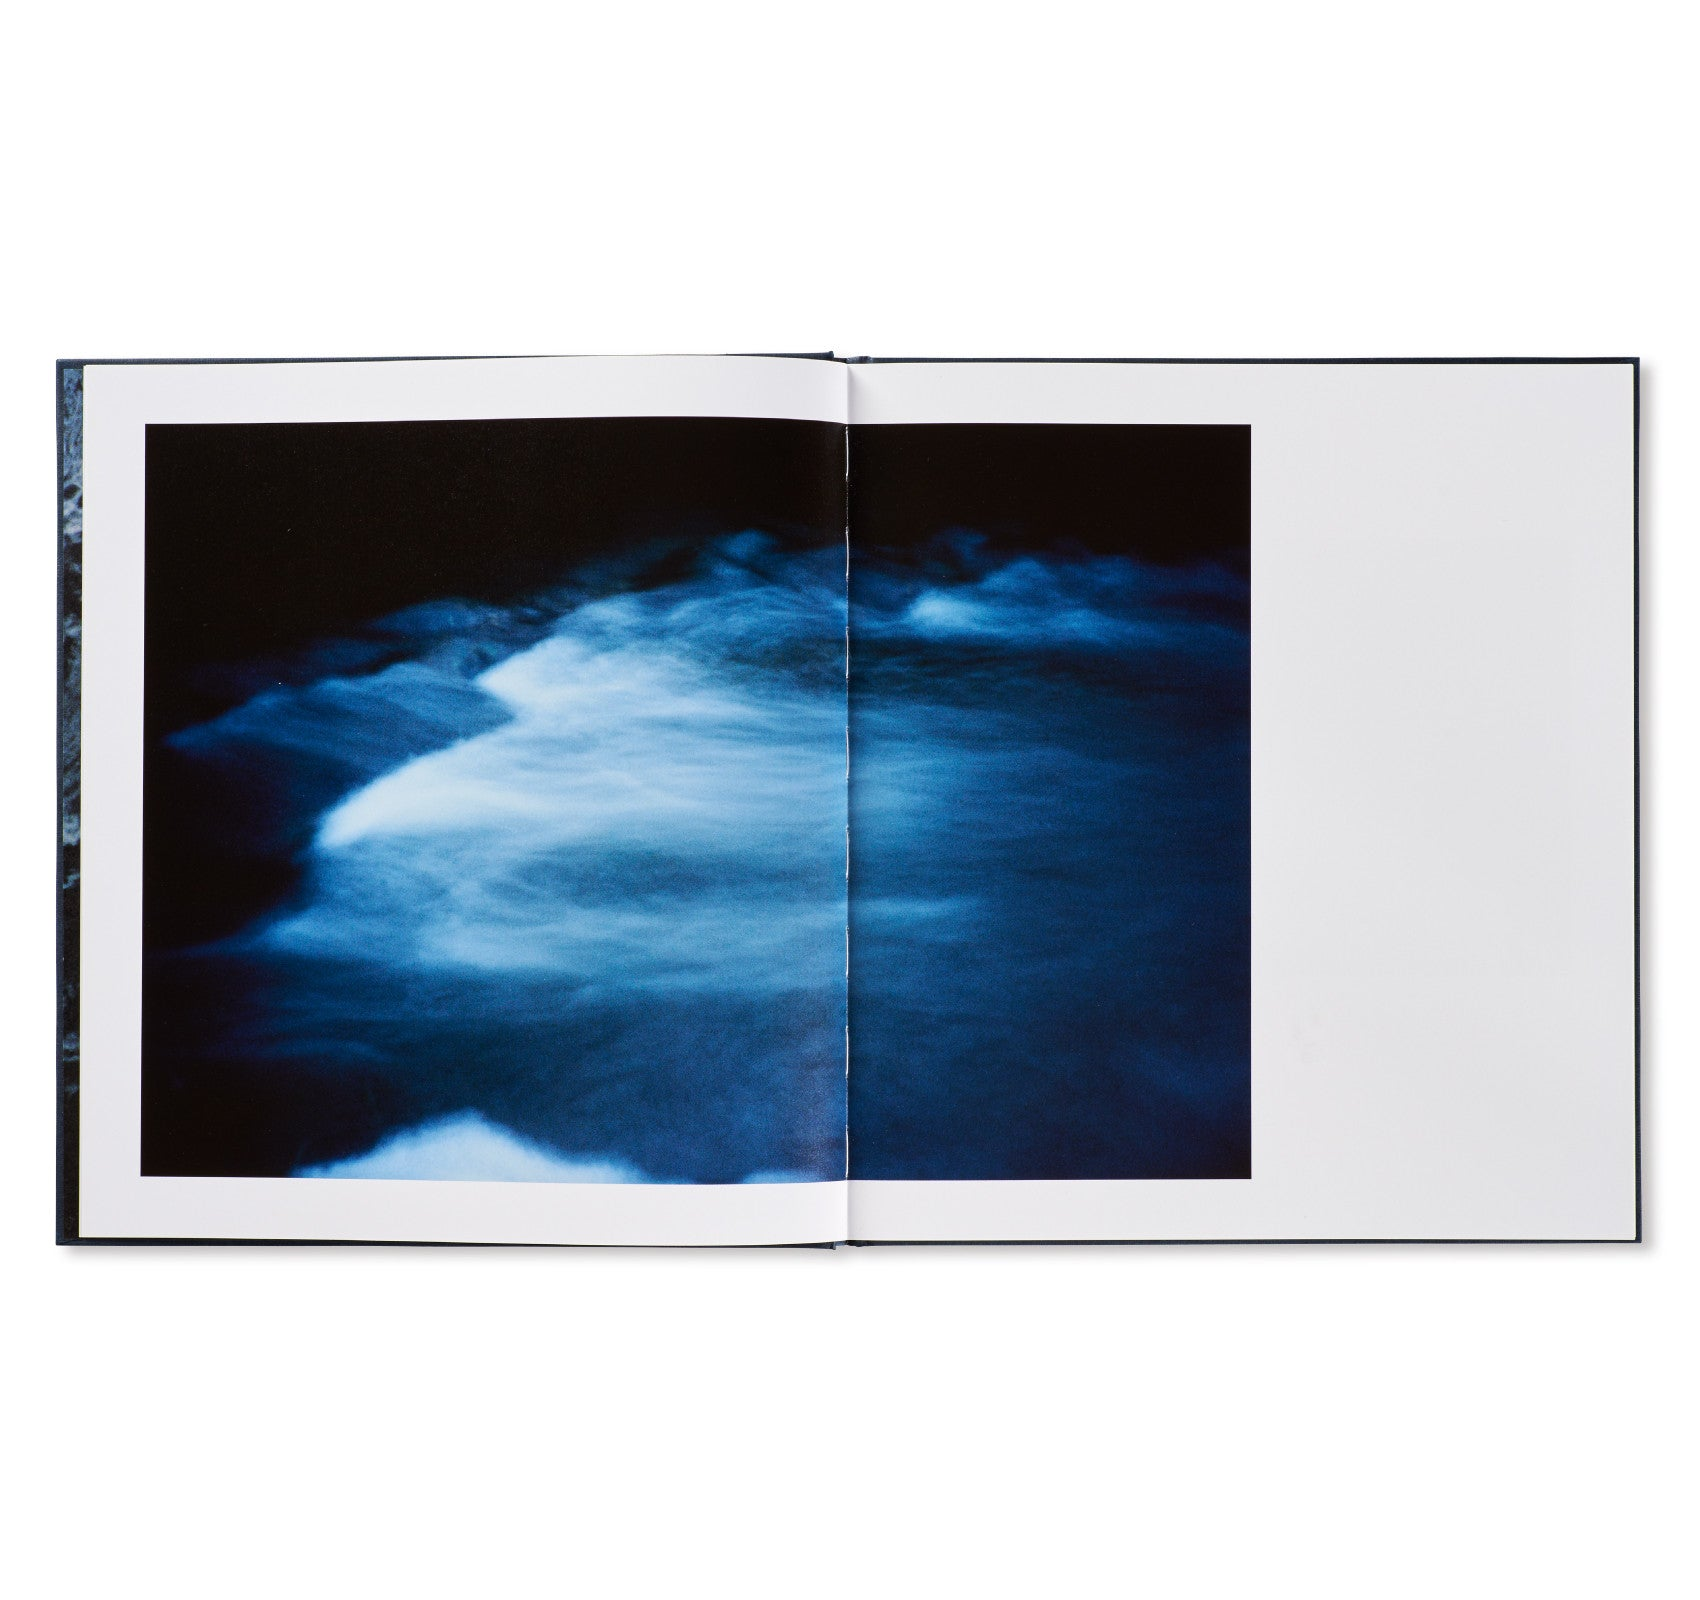 BEYOND MAPS AND ATLASES by Bertien van Manen